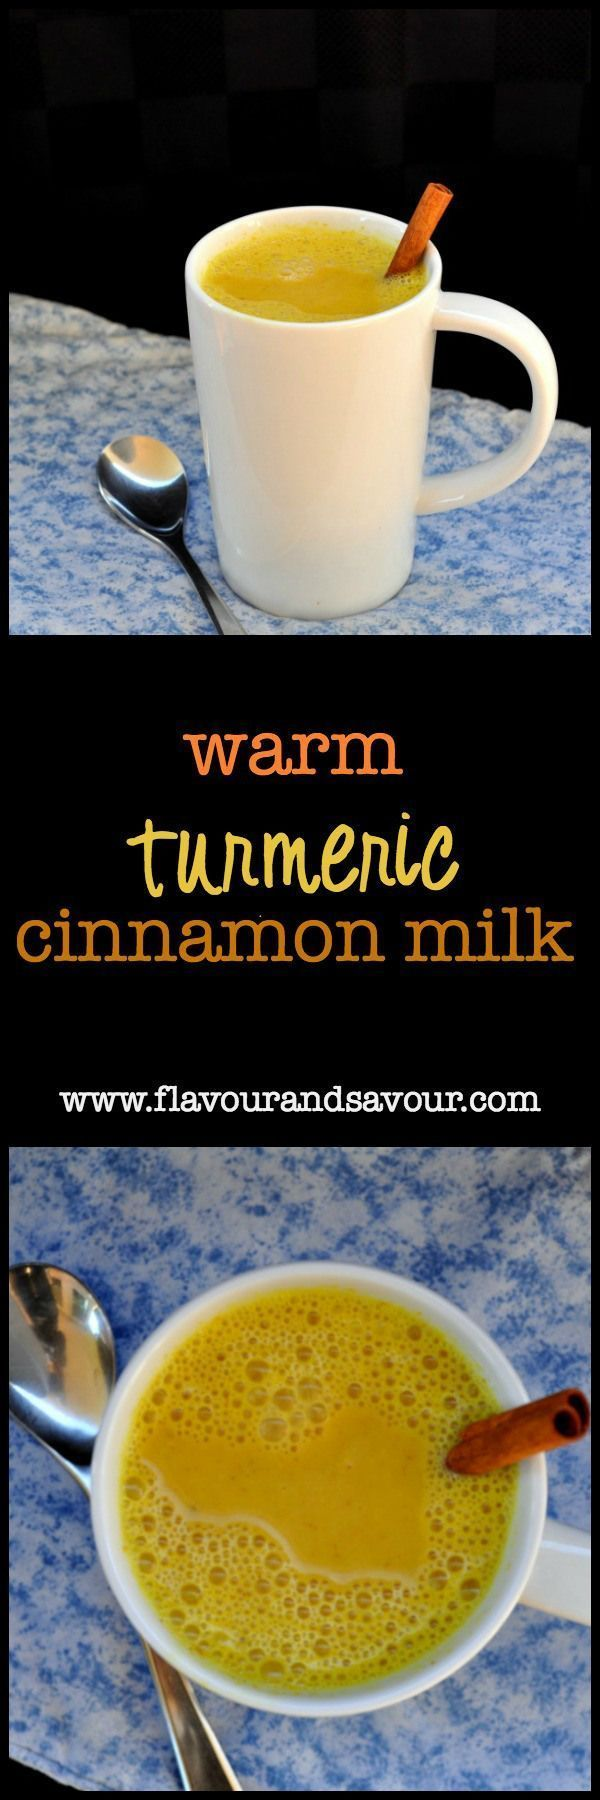 Warm Turmeric Cinnamon Milk. A healthy anti-inflammatory, anti-oxidant Golden Milk flavoured with ginger and honey. Can't sleep? Try this before bed. Works for me! |www.flavourandsavour.com